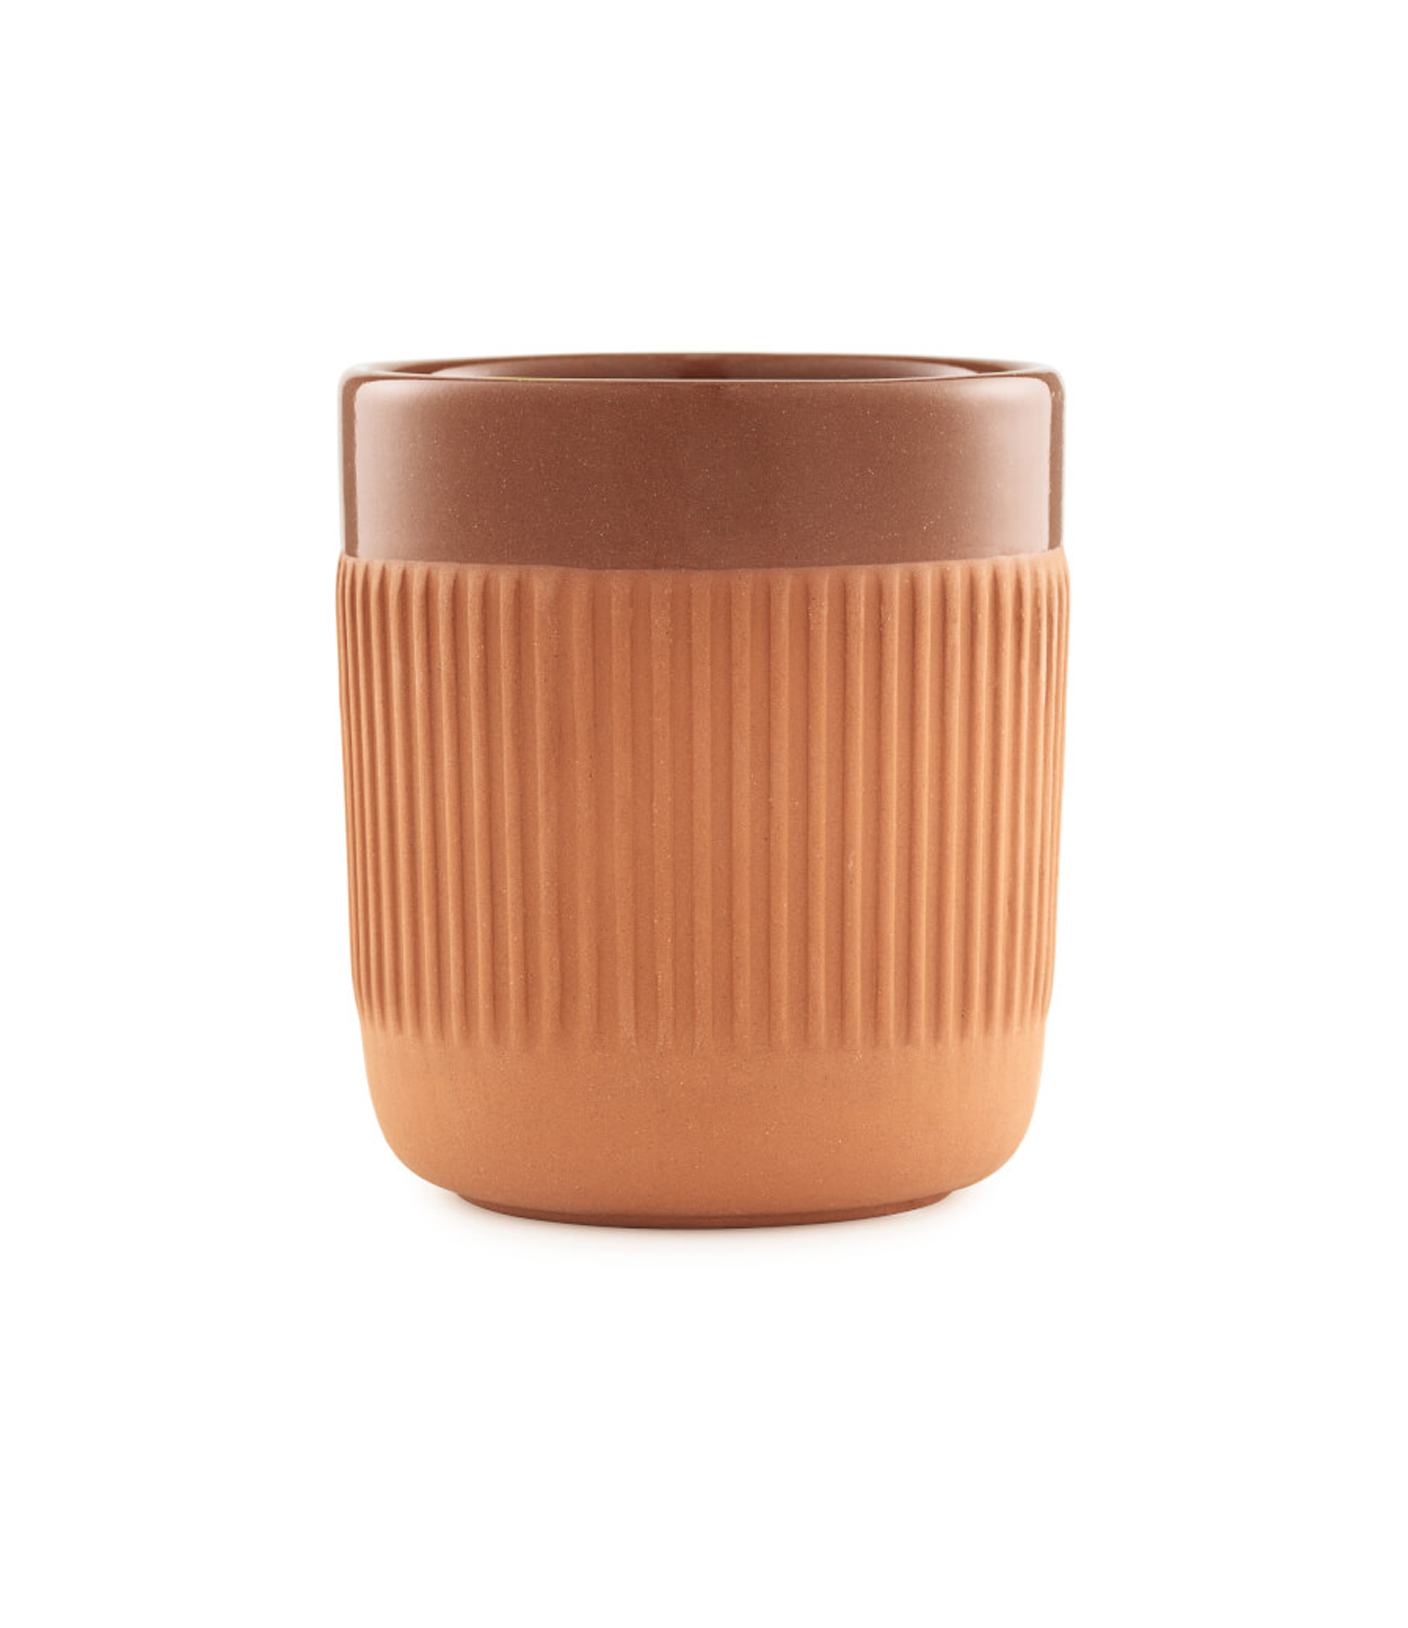 terracotta cup | @themissprints